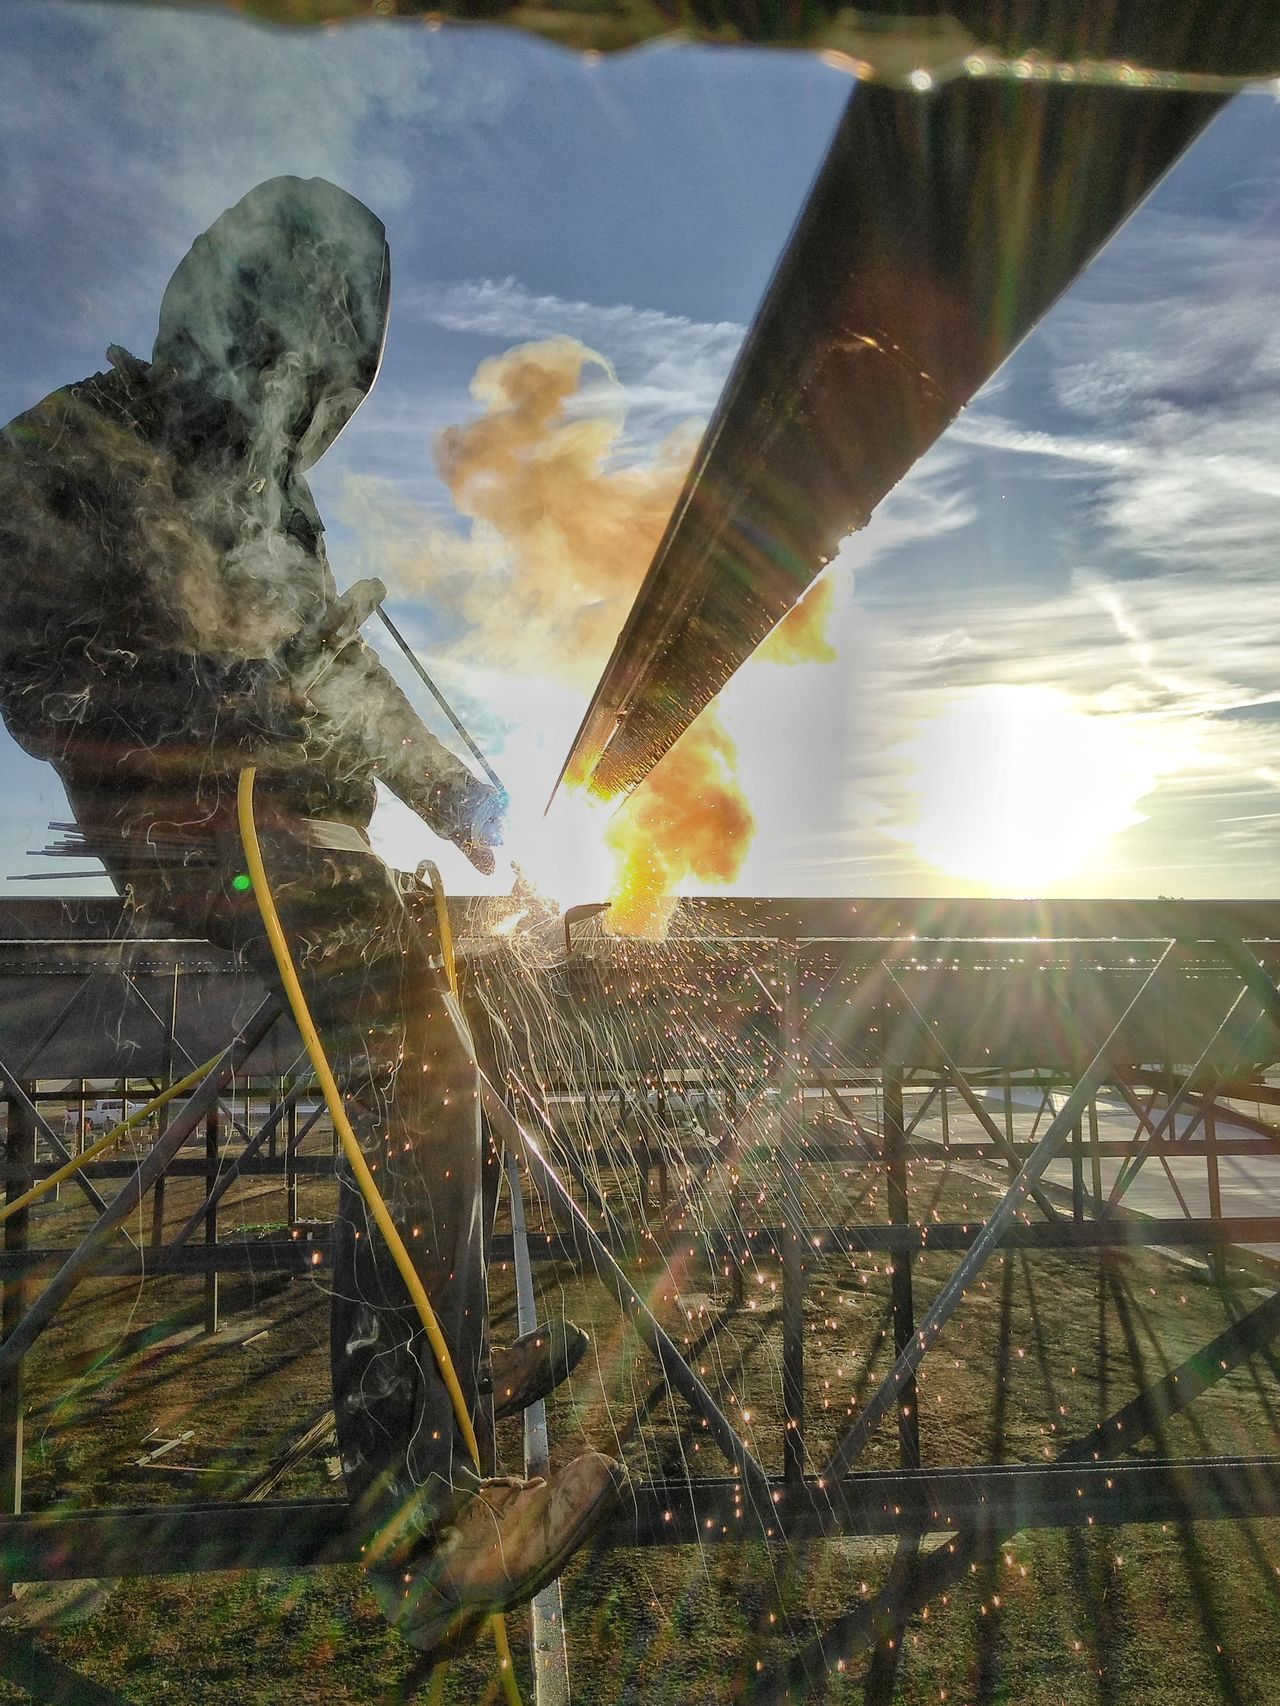 Water Cloud - Sky Outdoors Nature Workplace Welding One Person Action Shot  Sparks Fly Iron Worker Michiganders Hdr_Collection